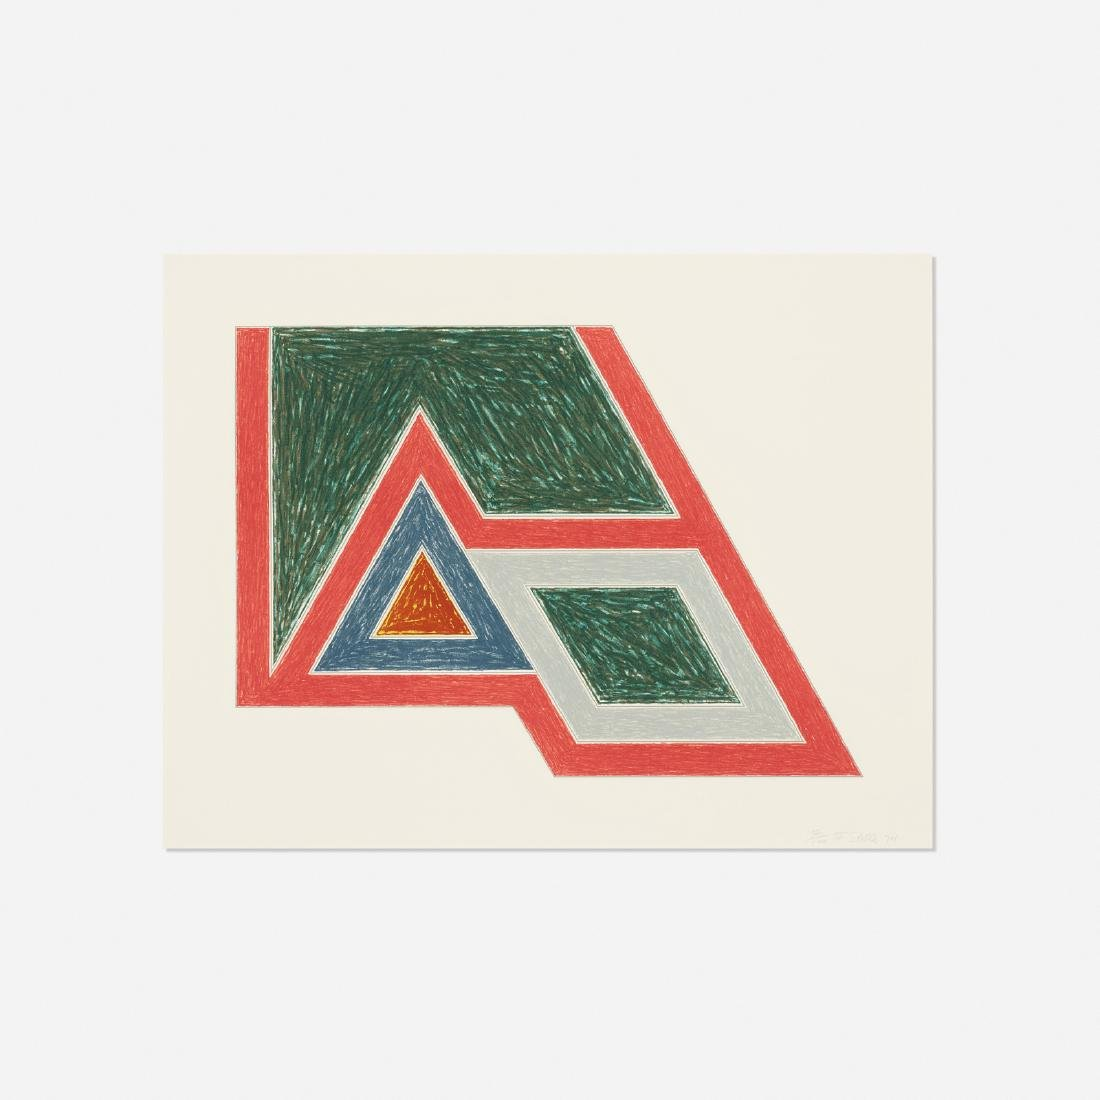 Frank Stella, Sanbornville (from the Eccentric Polygons